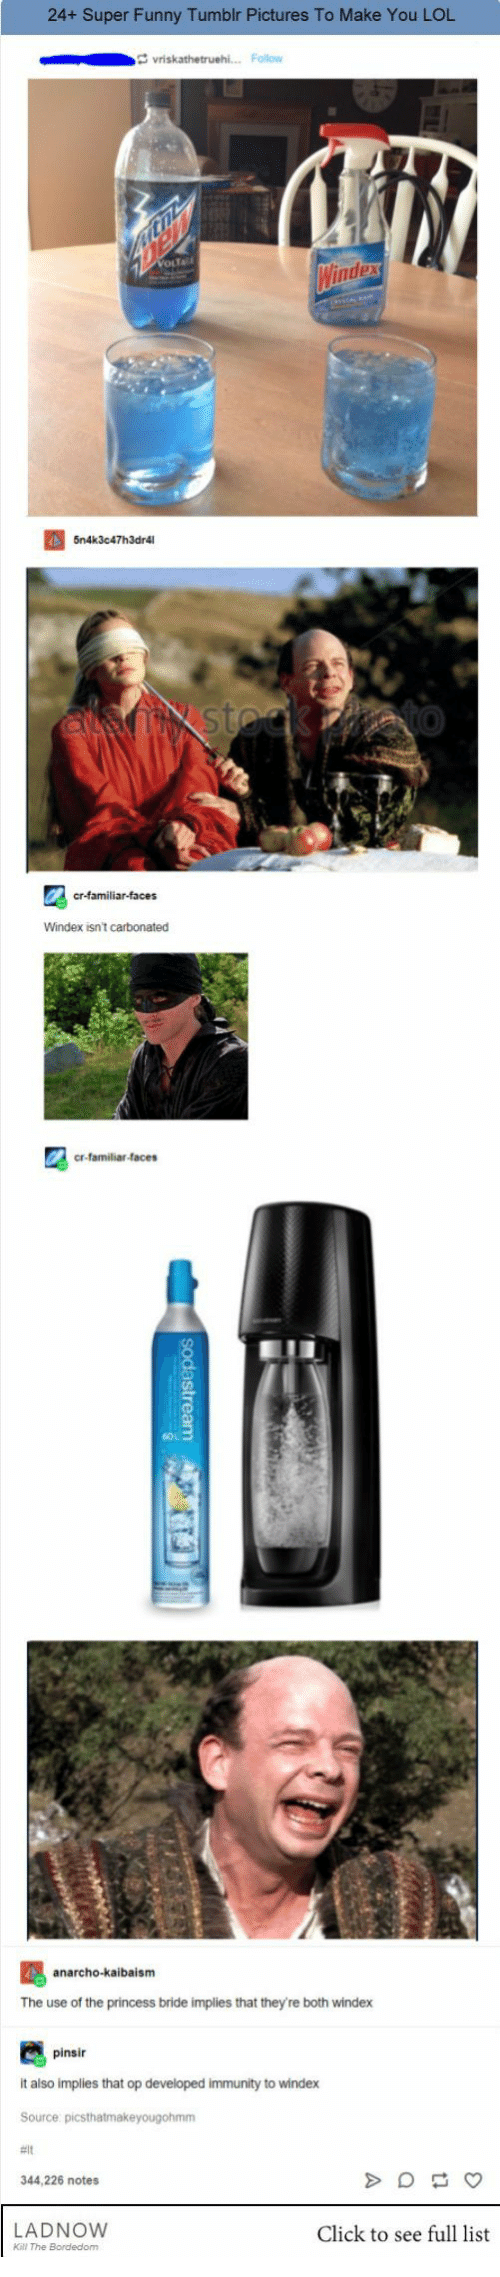 Click, Funny, and Lol: 24+ Super Funny Tumblr Pictures To Make You LOL  Windex isnt carbonated  cr-familiar-faces  anarcho-kaibaism  The use of the princess bride implies that they're both windex  pinsir  it also implies that op developed immunity to windex  344,226 notes  LADNOWw  Click to see full list  Kall The Bordedom